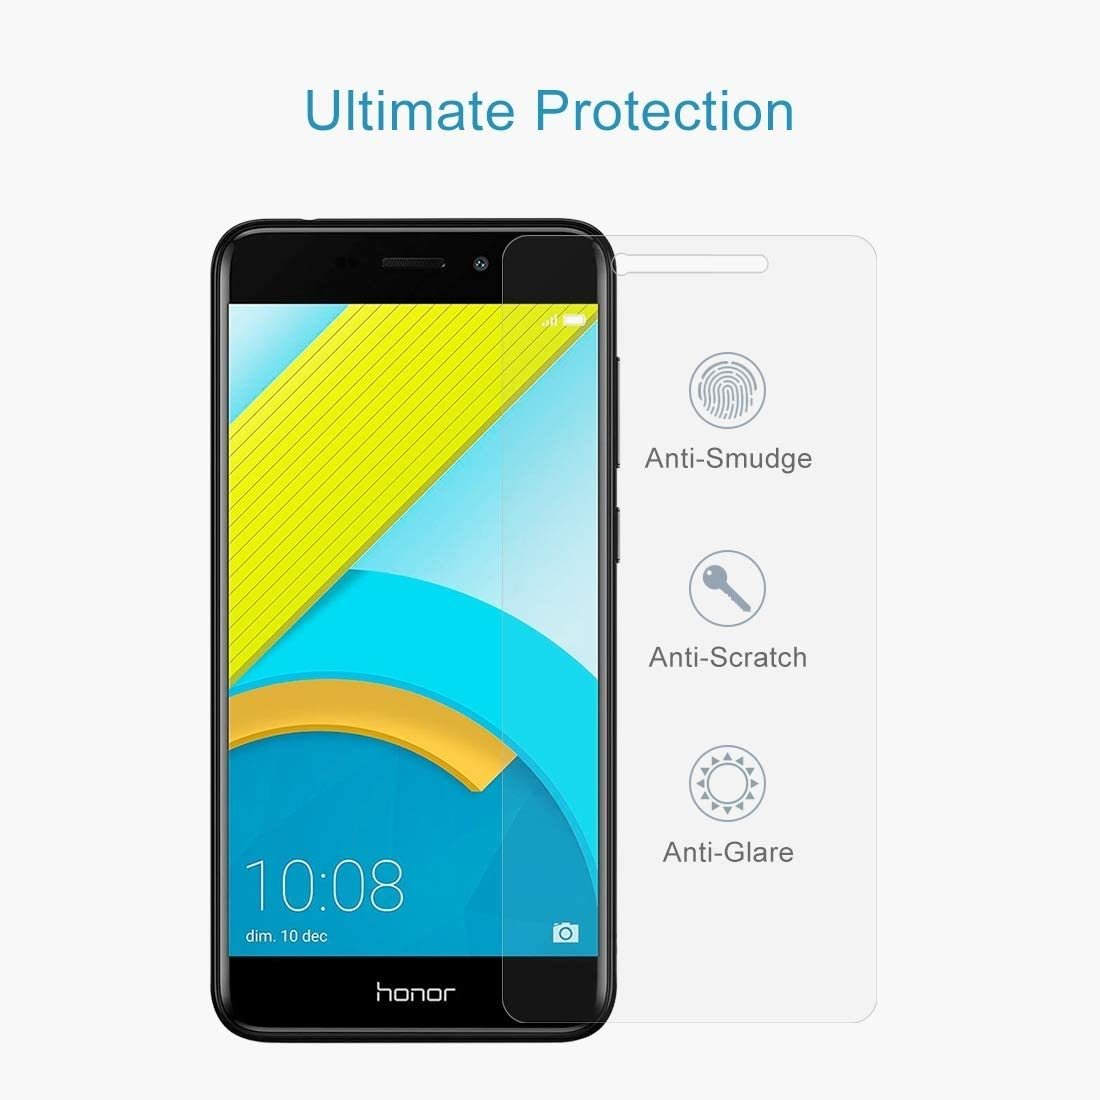 ALICEWU WJH 100 PCS for Huawei Honor 6C Pro 0.26mm 9H Surface Hardness 2.5D Explosion-Proof Tempered Glass Screen Film